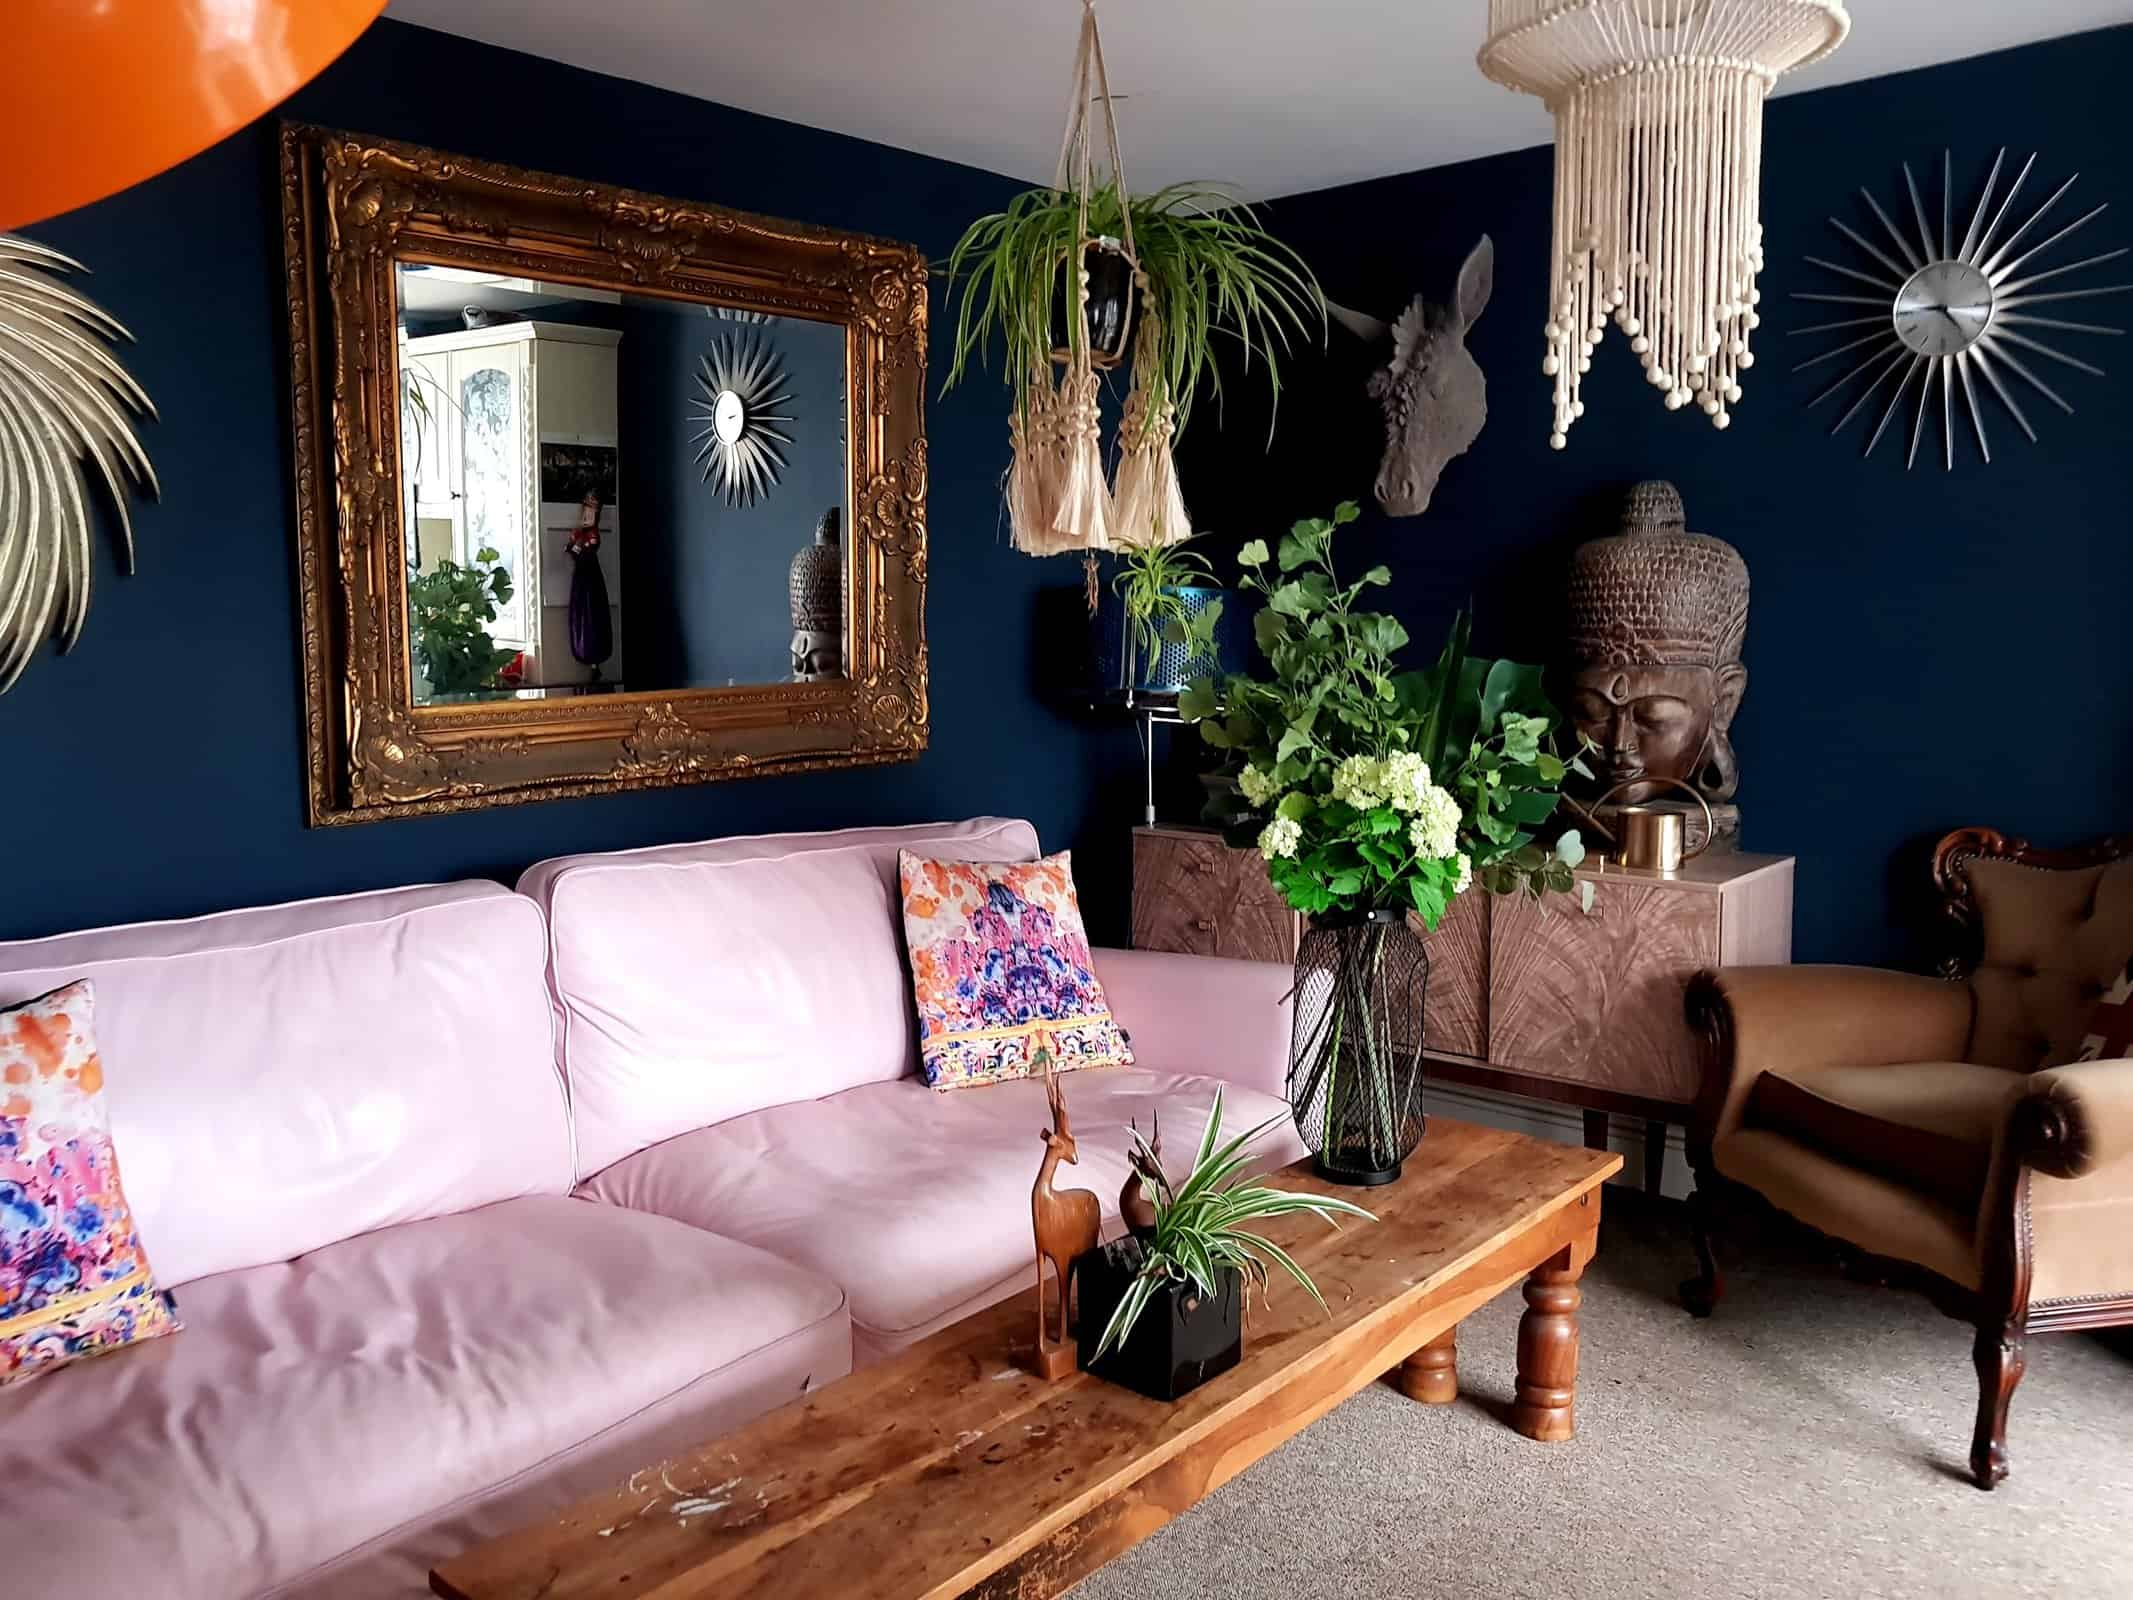 My Decorating Style Is Definitely Boho And Relaxed (maybe A Bit Messy Too)  I Love Dark Walls, Loud Wallpaper And Gold Mirrors! Iu0027m Also Pretty Fond Of  My ...